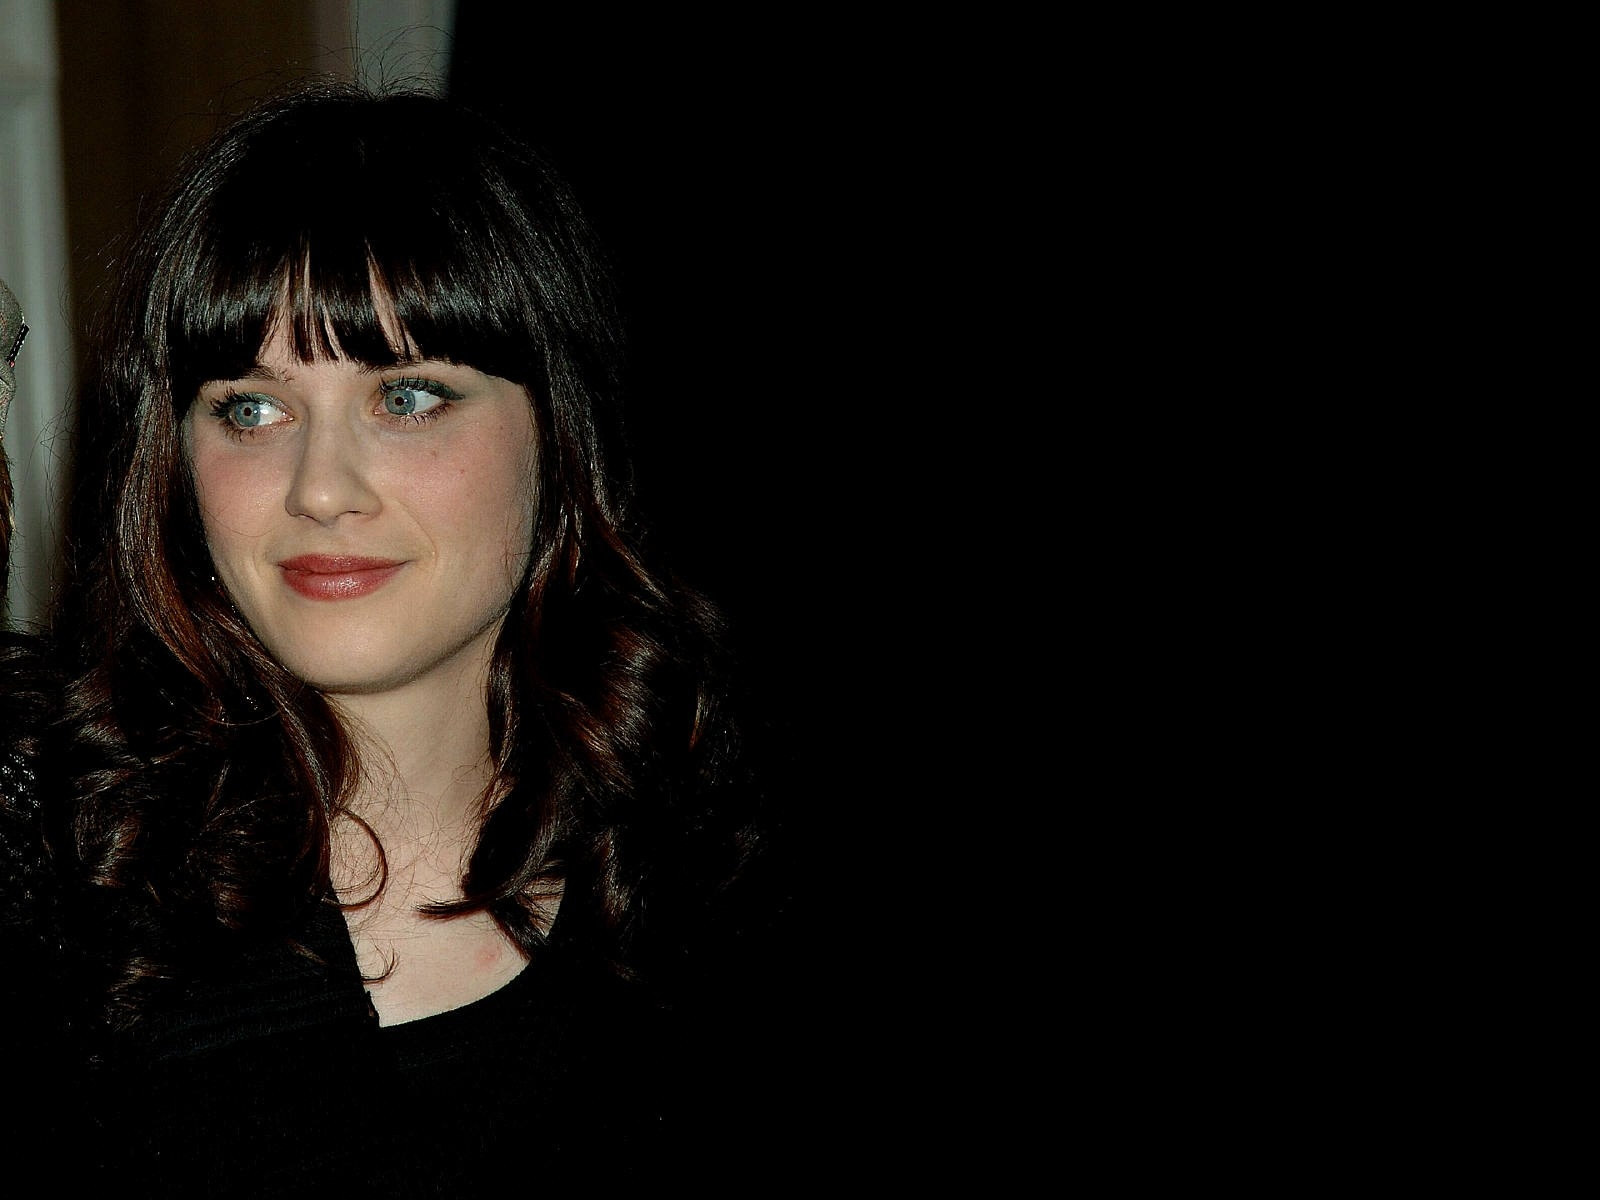 Wallpaper di Zooey Deschanel